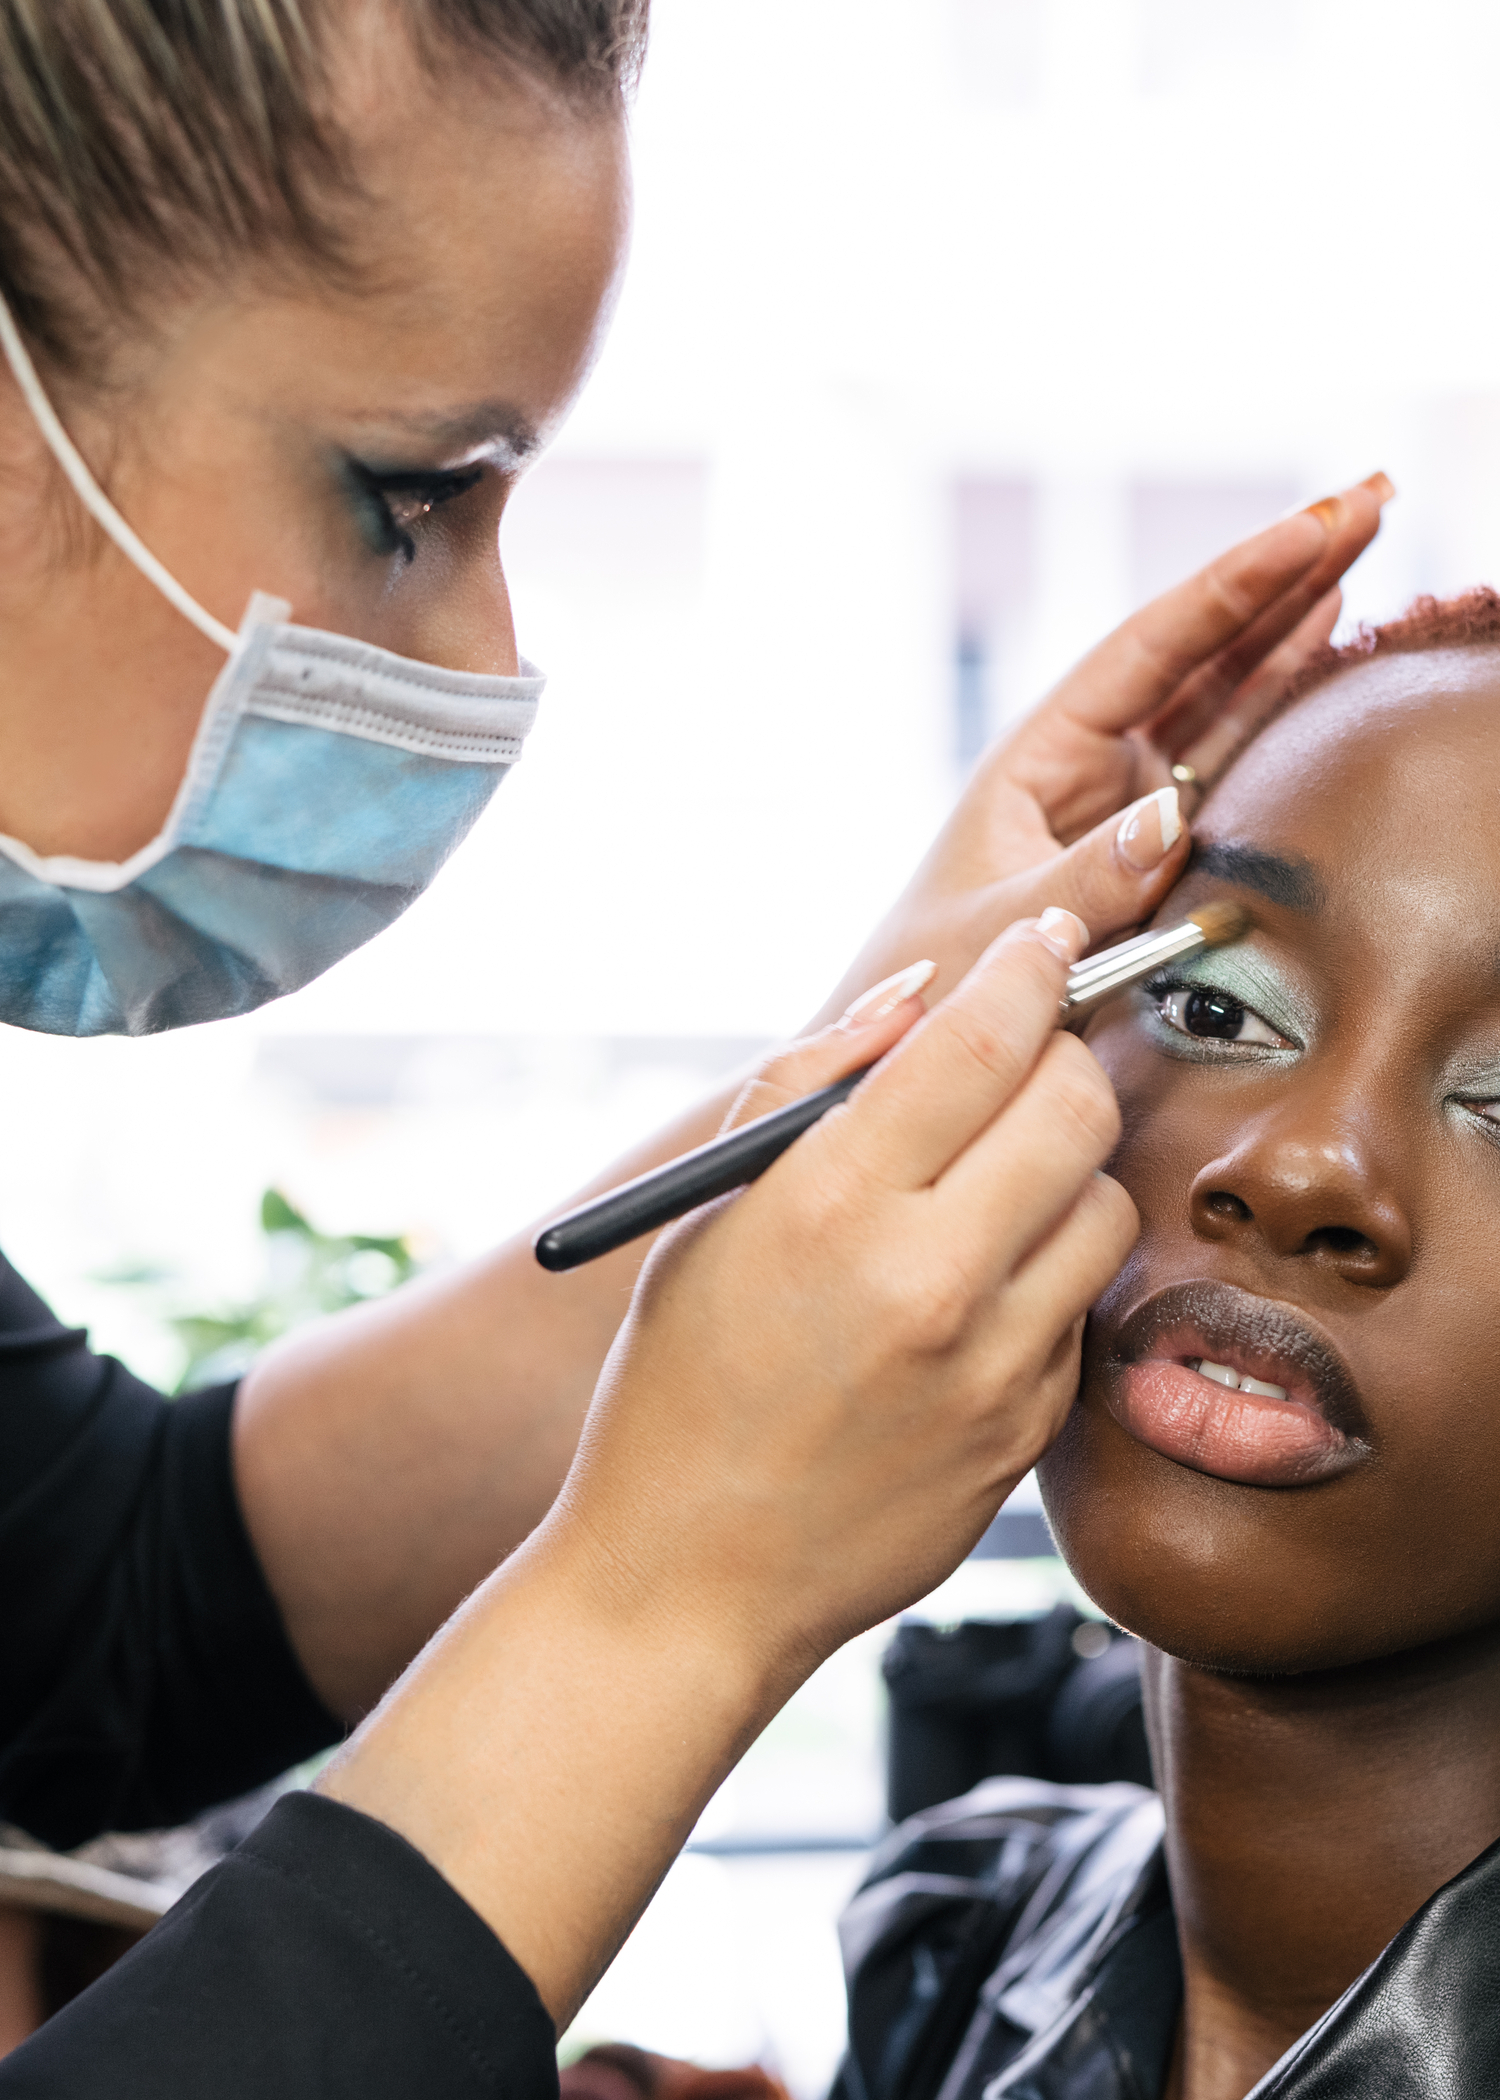 Doing makeup at a salon, with face mask on